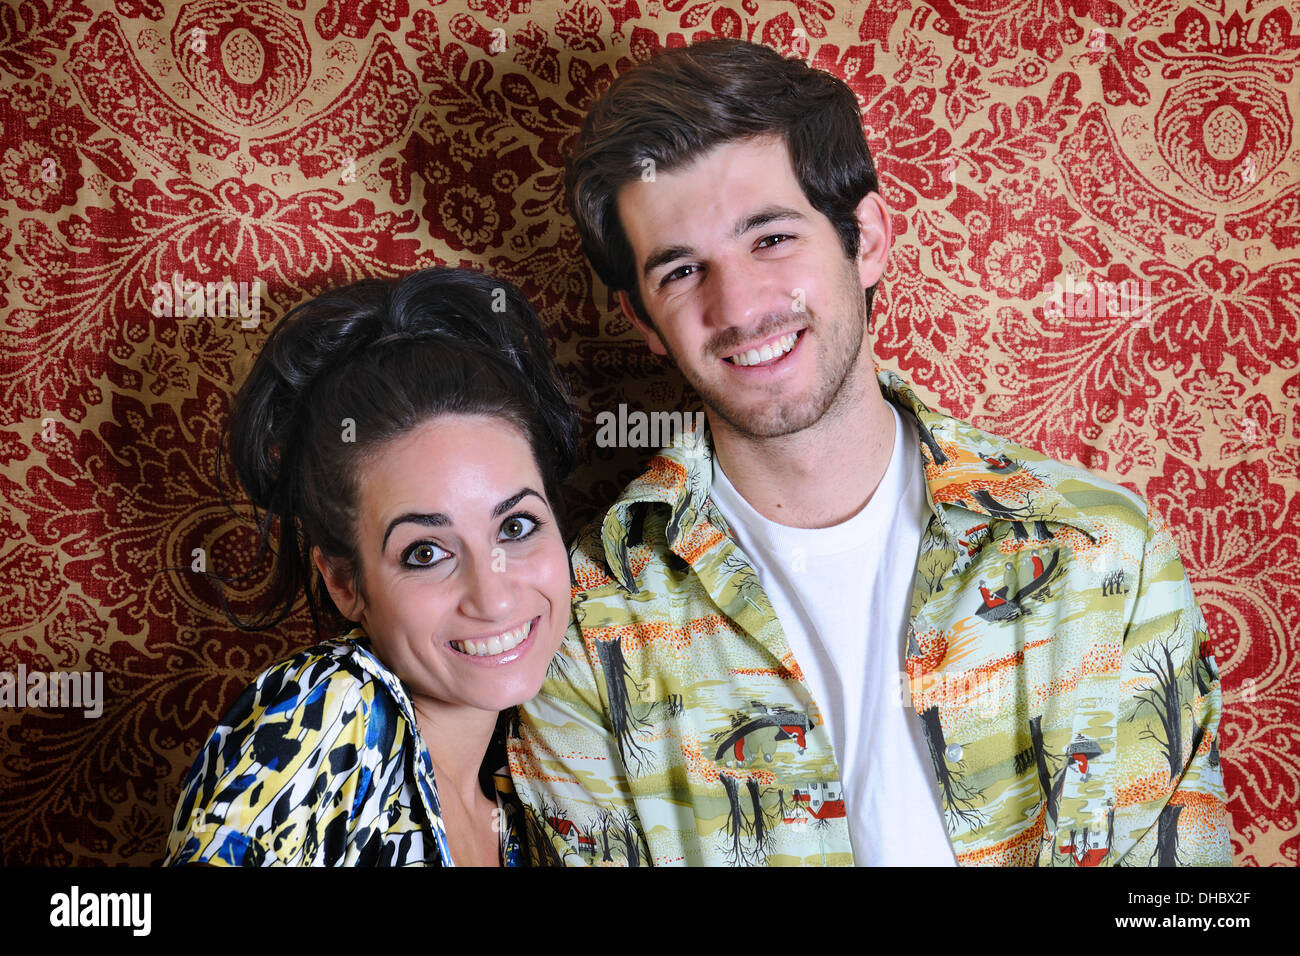 Geeky couple portrait. - Stock Image